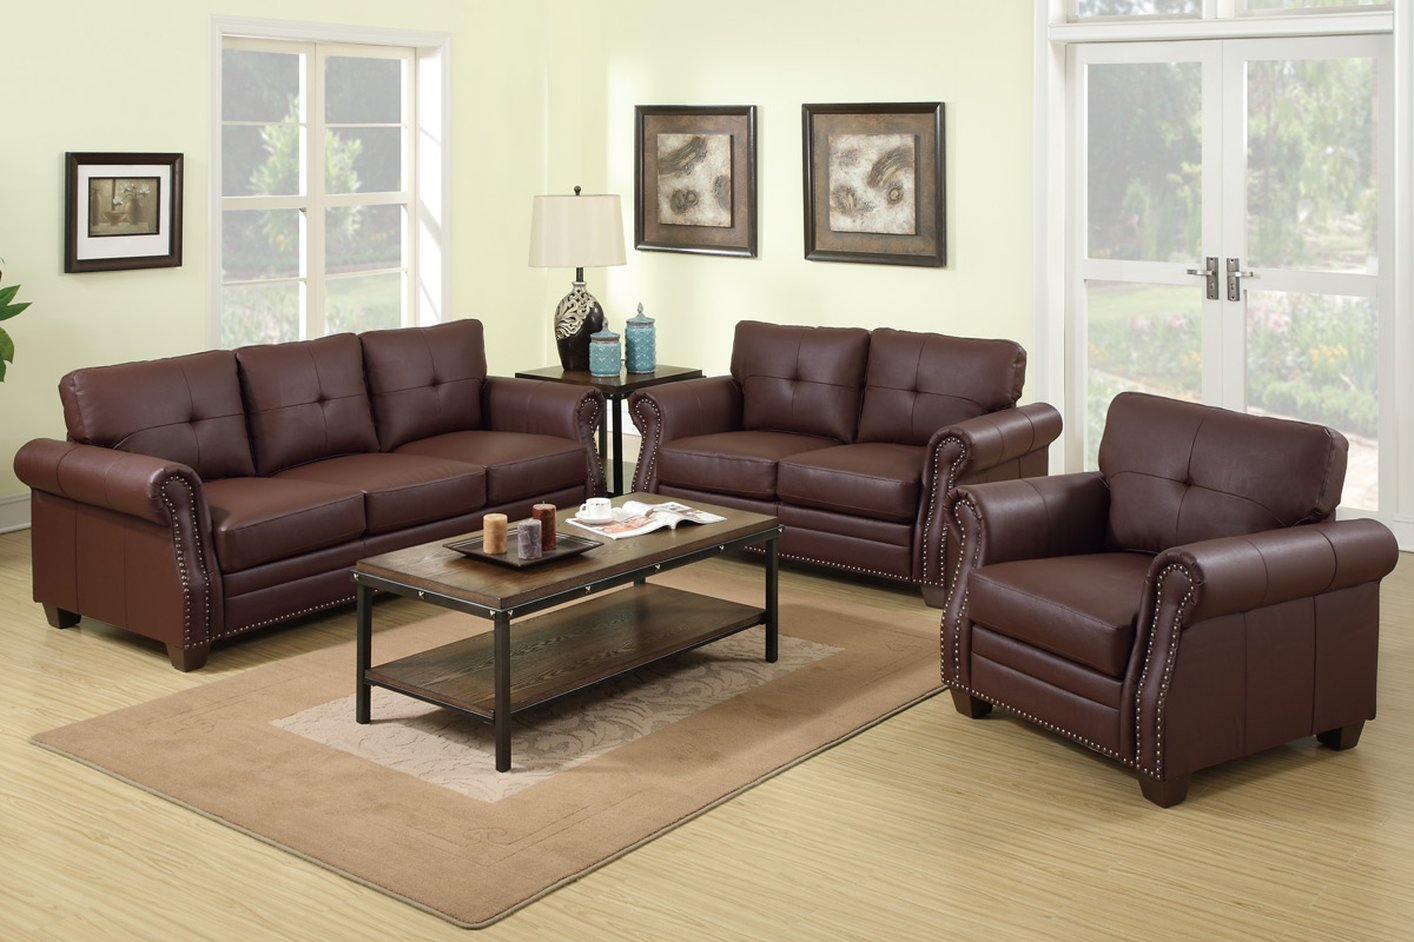 Poundex baron f7799 brown leather sofa and loveseat set steal a sofa furniture outlet los Couches and loveseats